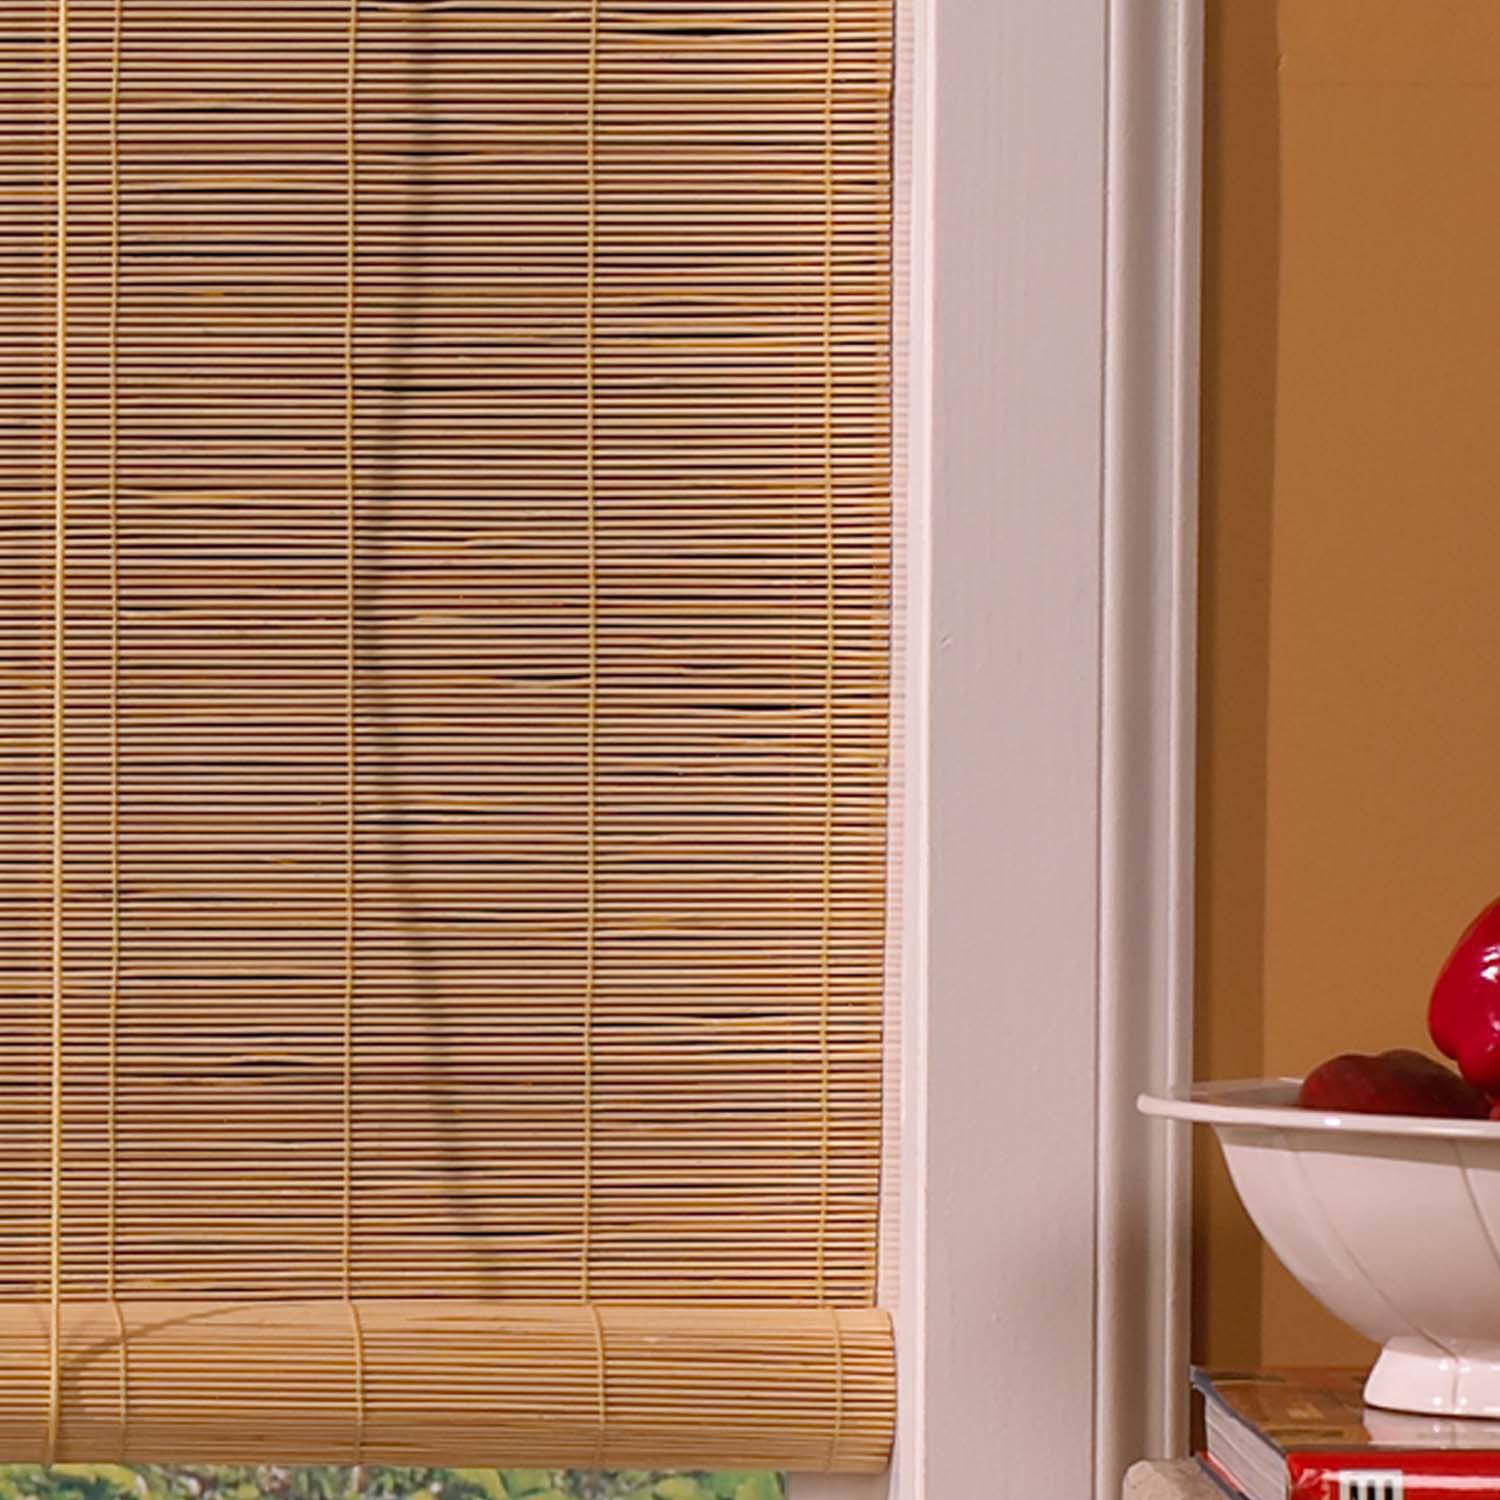 bamboo inspirational shades mini blinds blind best target tar amp of window roman cordless vinyl